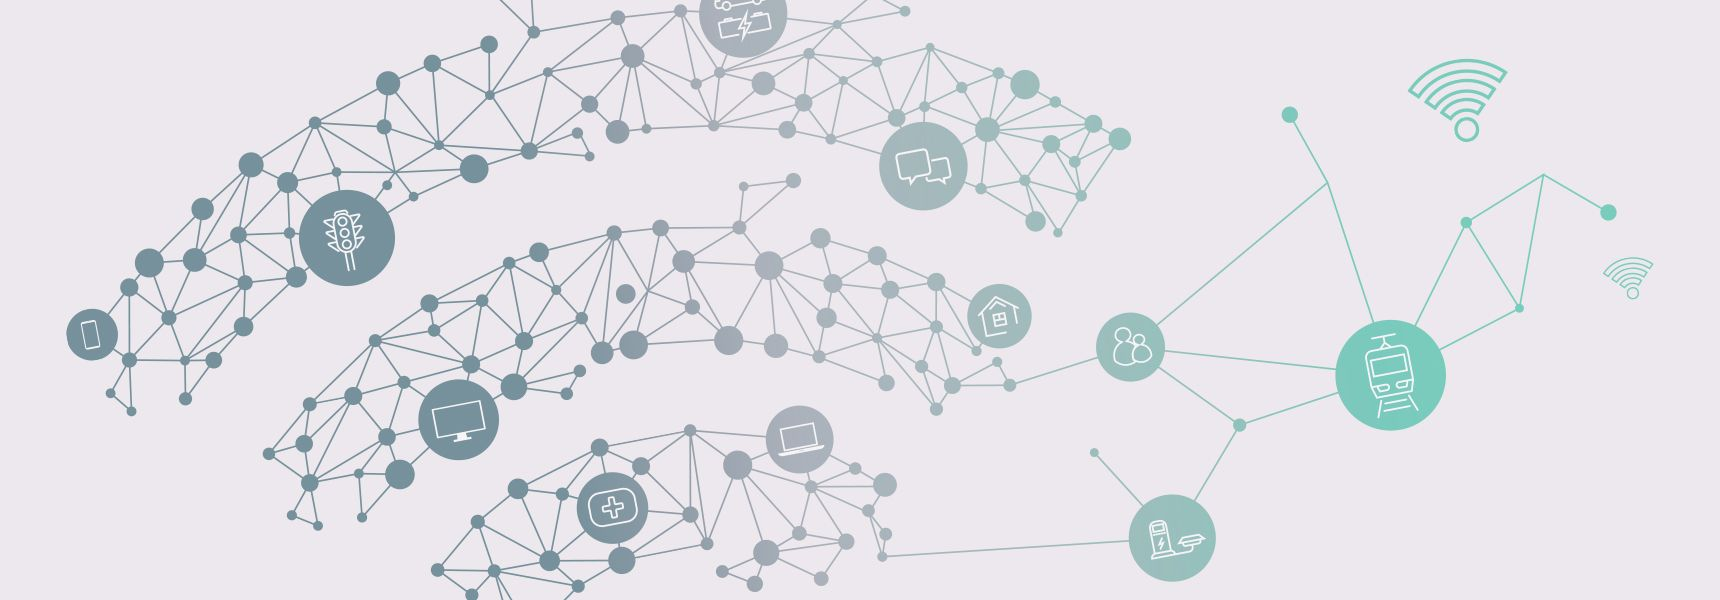 Achieving greater UK connectivity through the Code